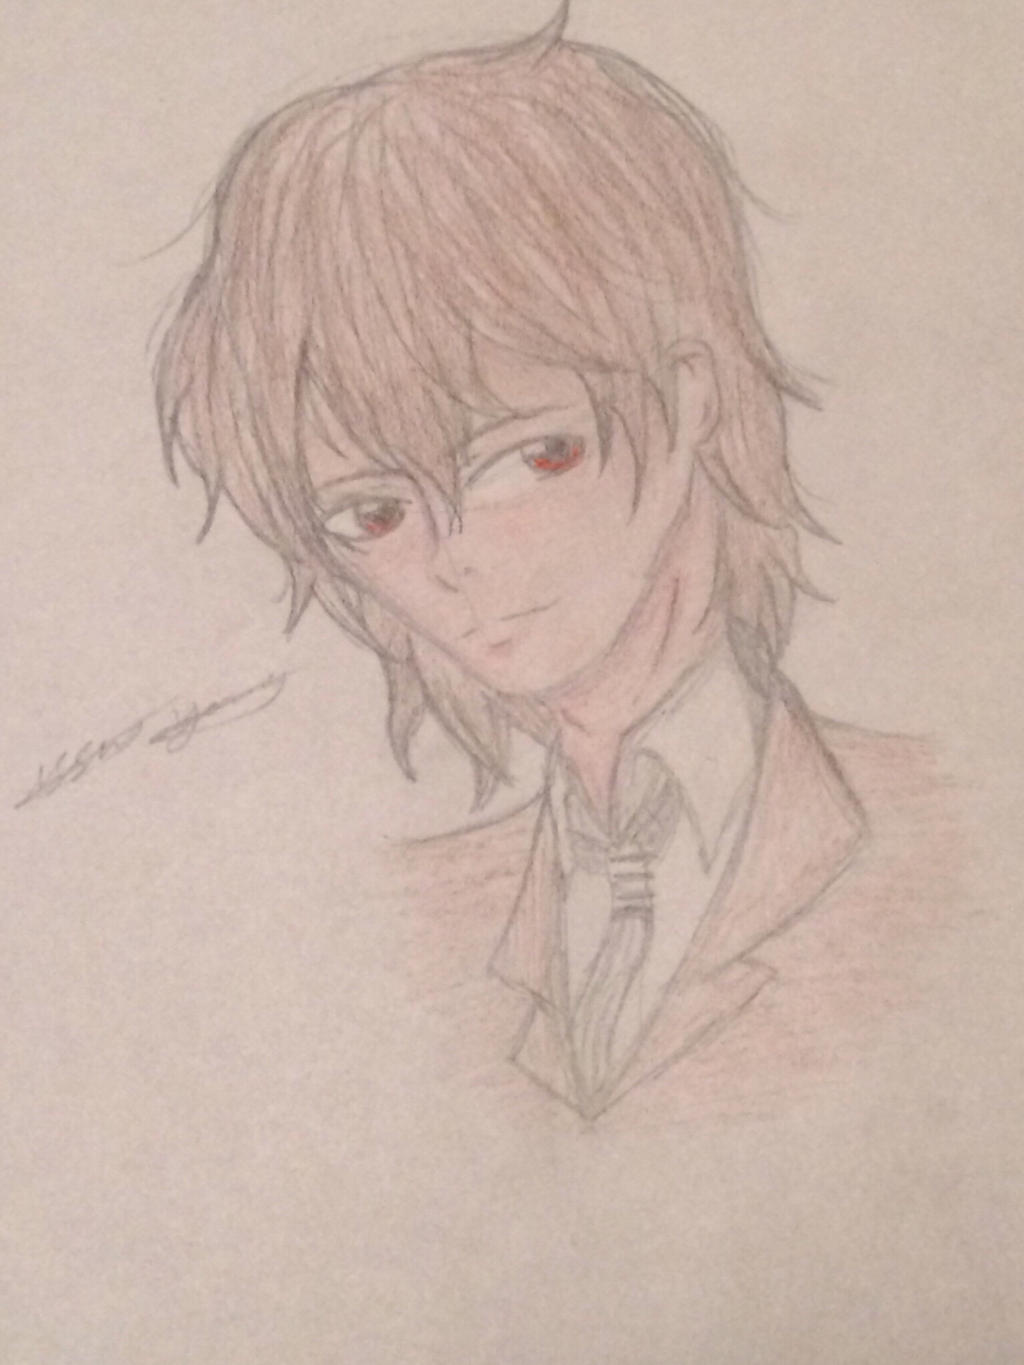 Akechi full colour by epicbubble7